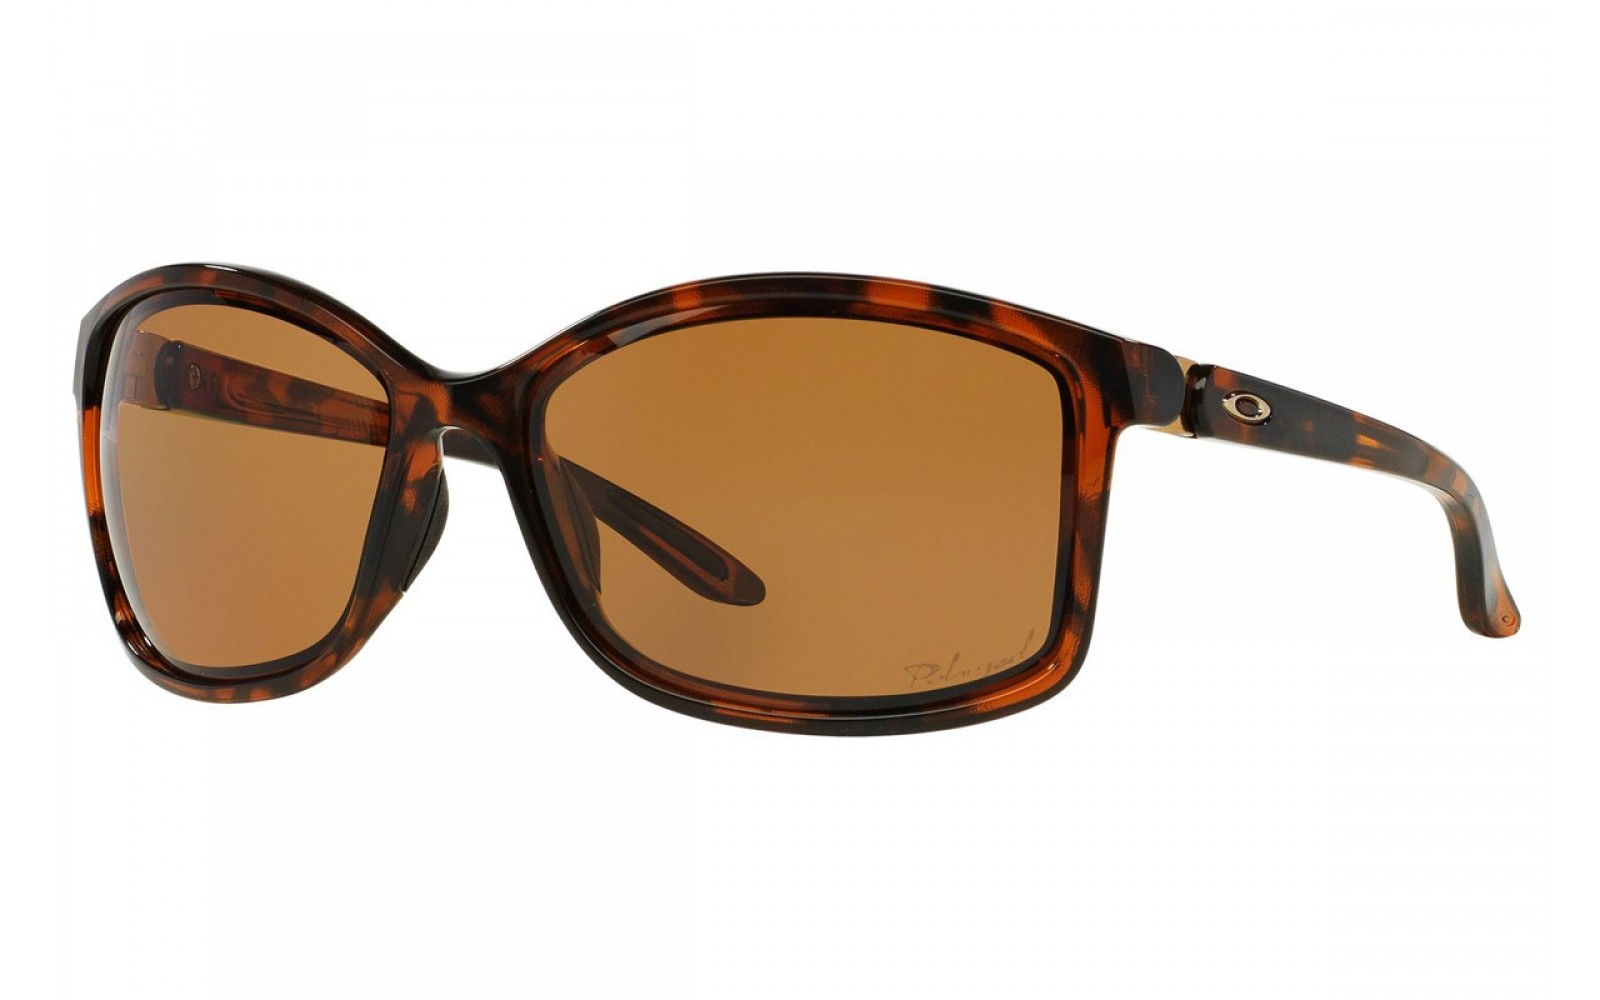 Oakley Step Up - Tortoise / Bronze Polarized - OO9292-01 Zonnebril